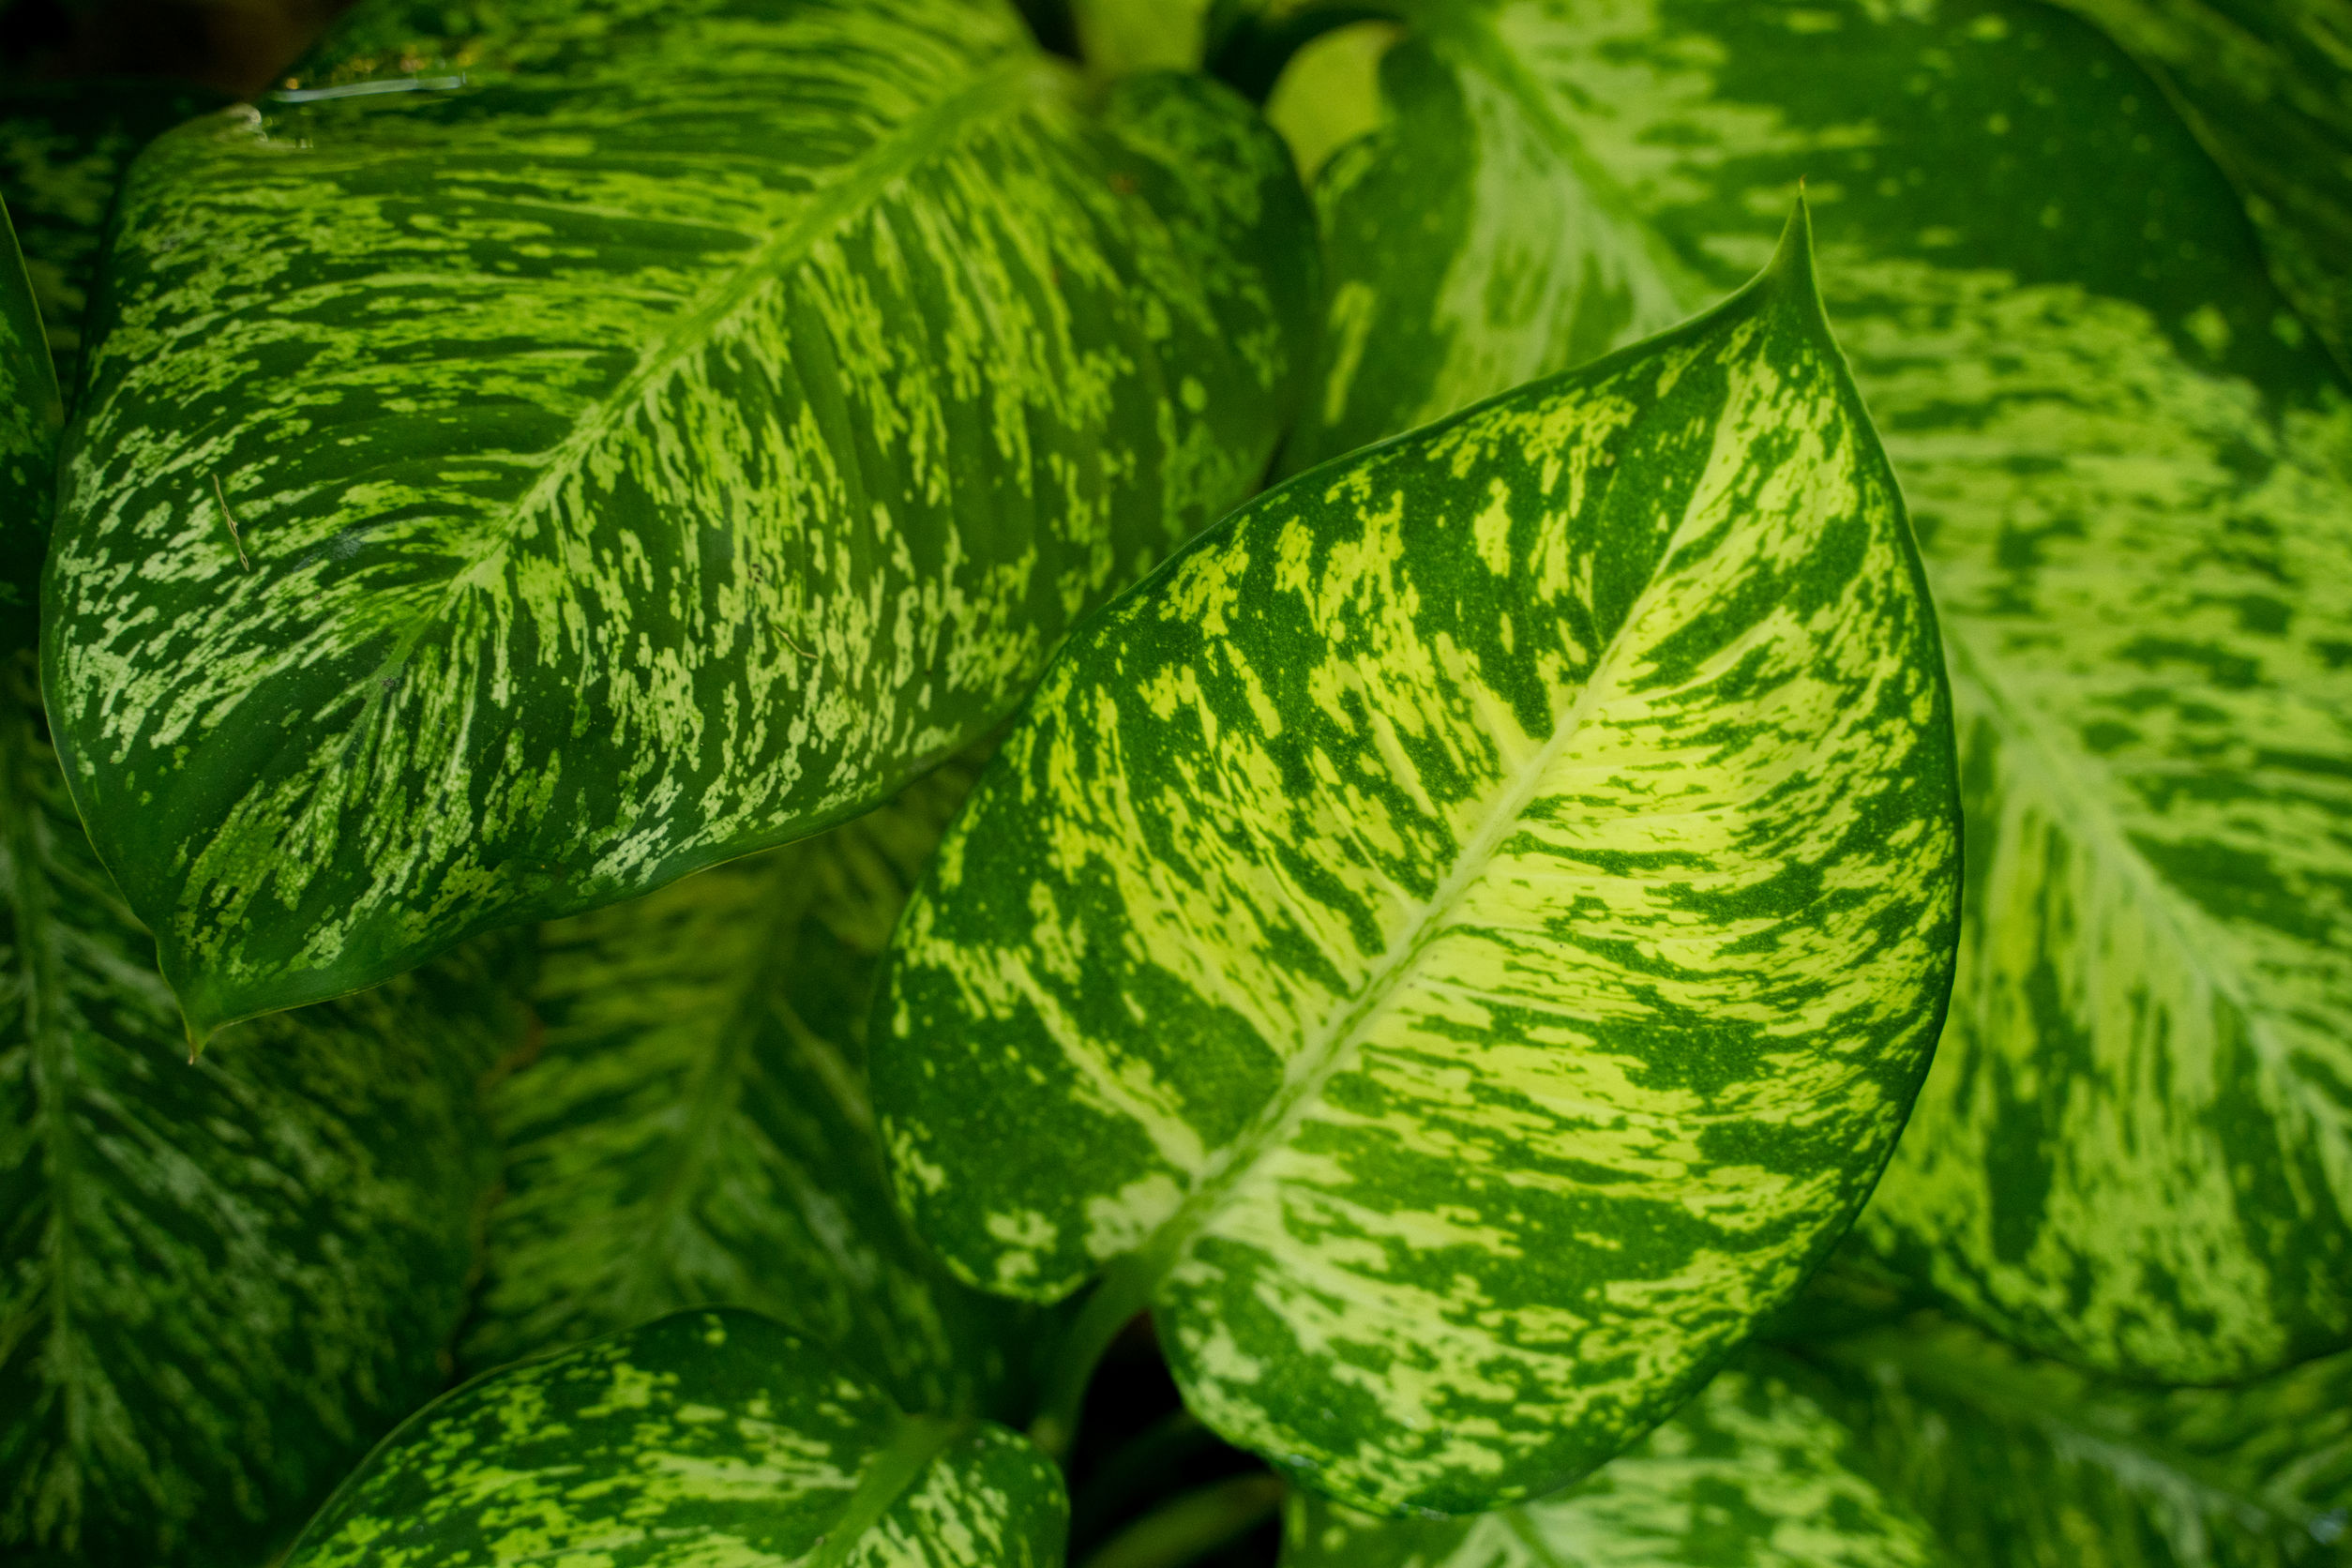 Beautiful green leaves of Dieffenbachia Amoena lucky cane